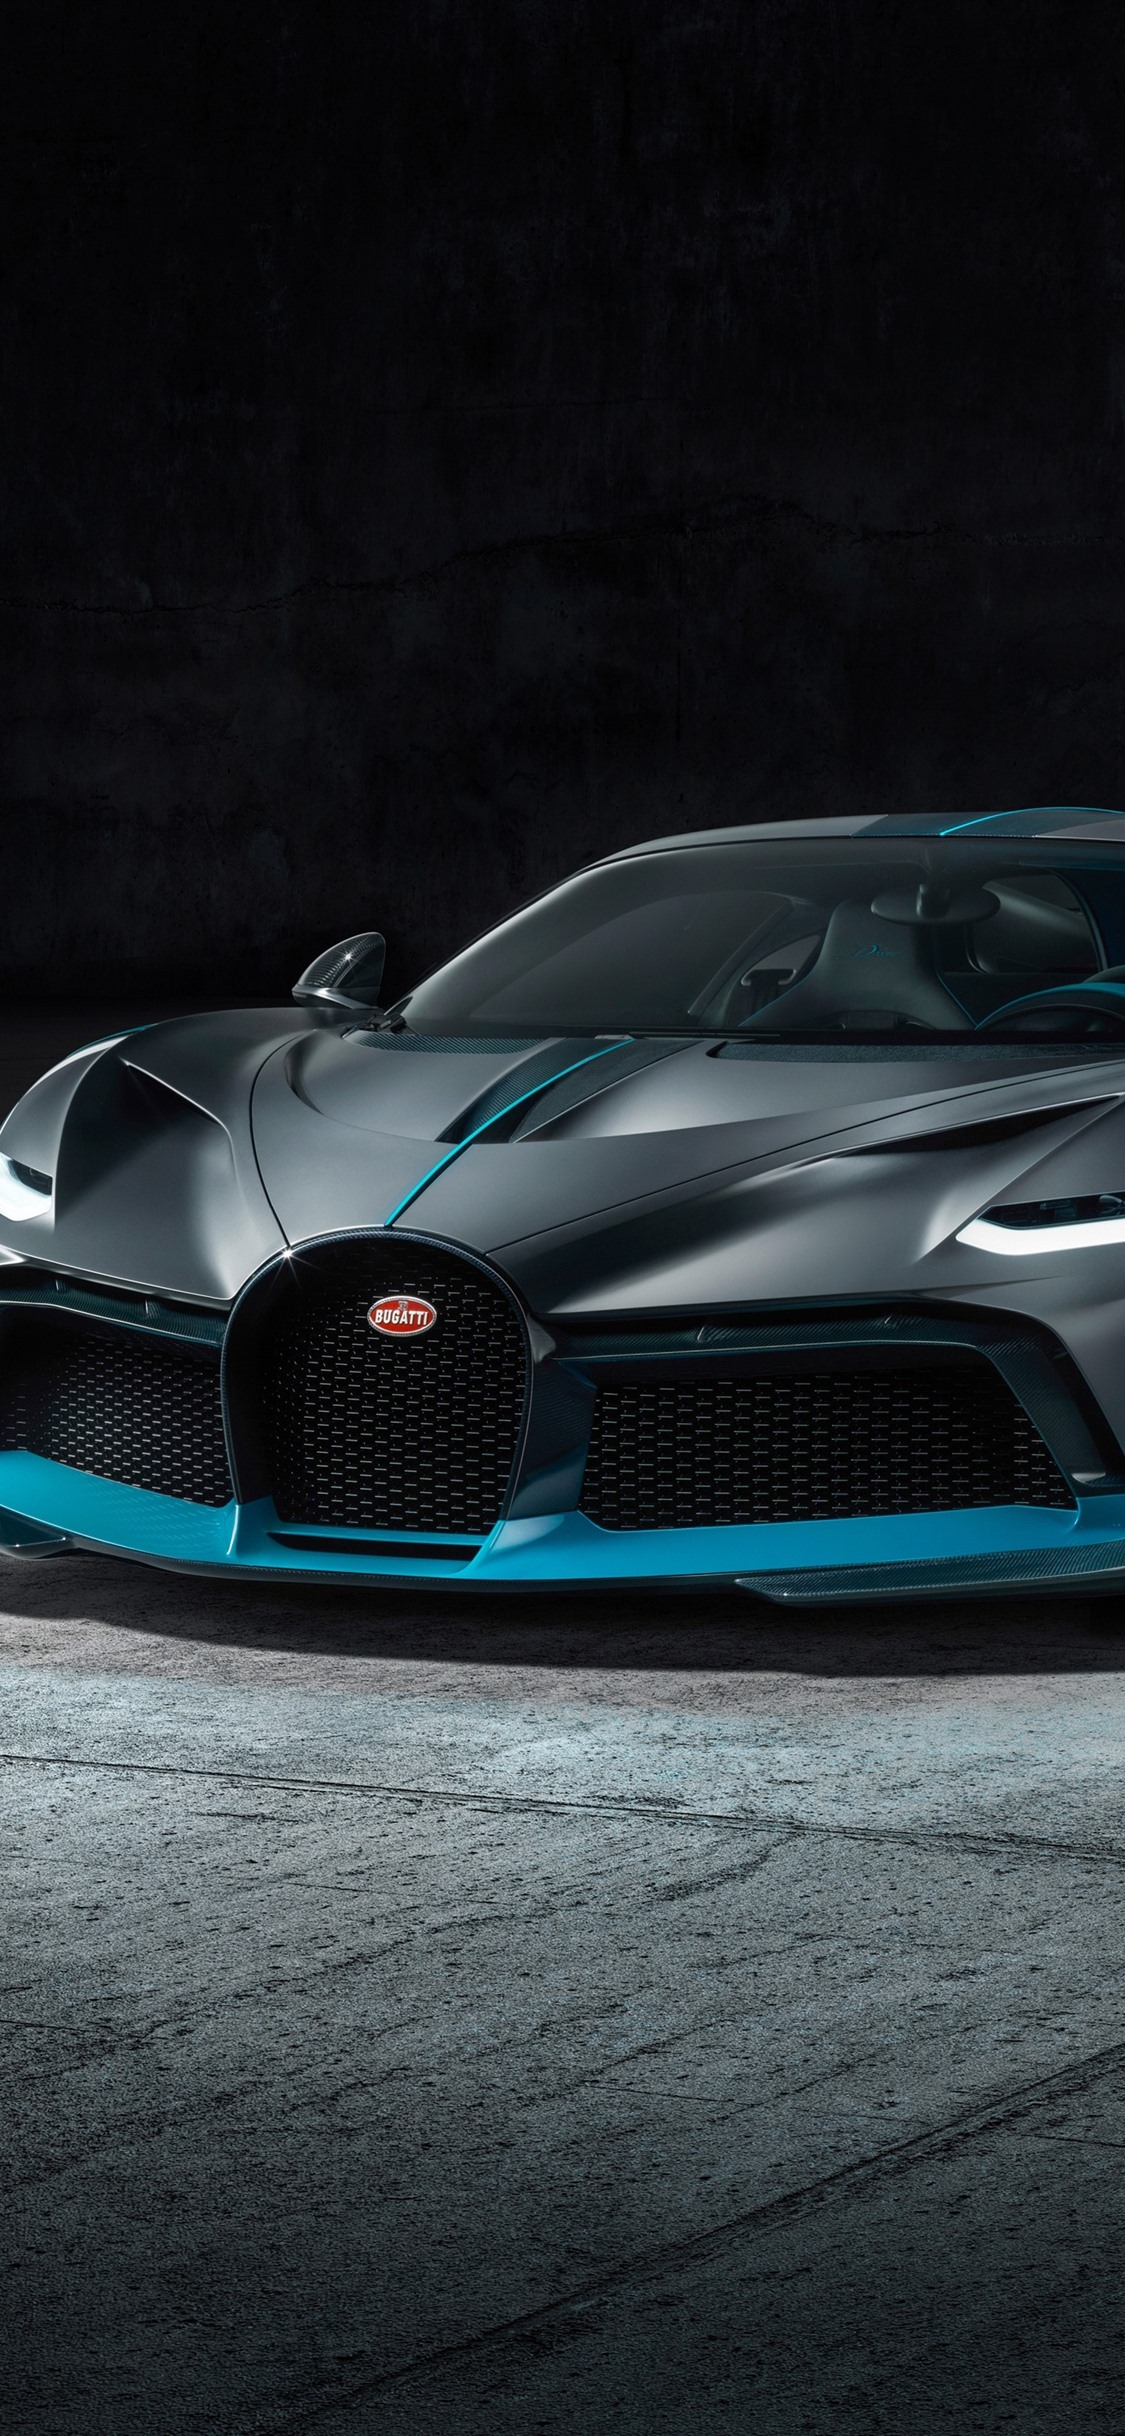 2019 Bugatti Divo Black Supercar Front View 1242x2688 Iphone 11 Pro Xs Max Wallpaper Background Picture Image